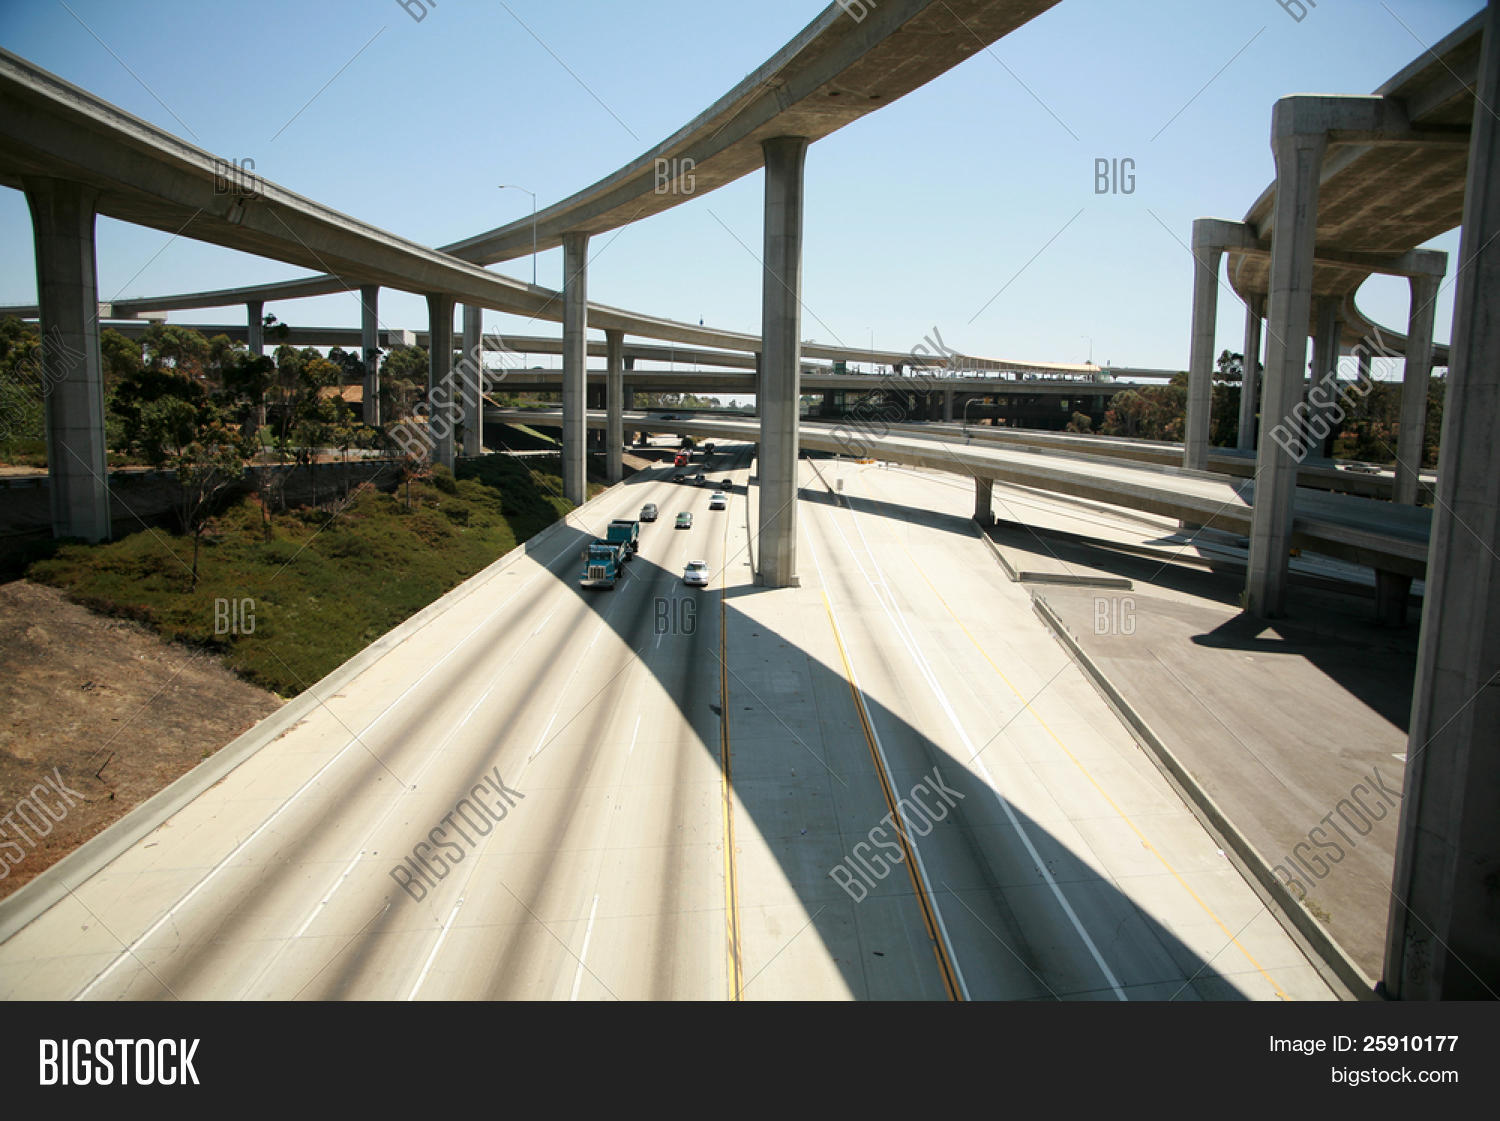 110 Freeway South Image & Photo (Free Trial) | Bigstock